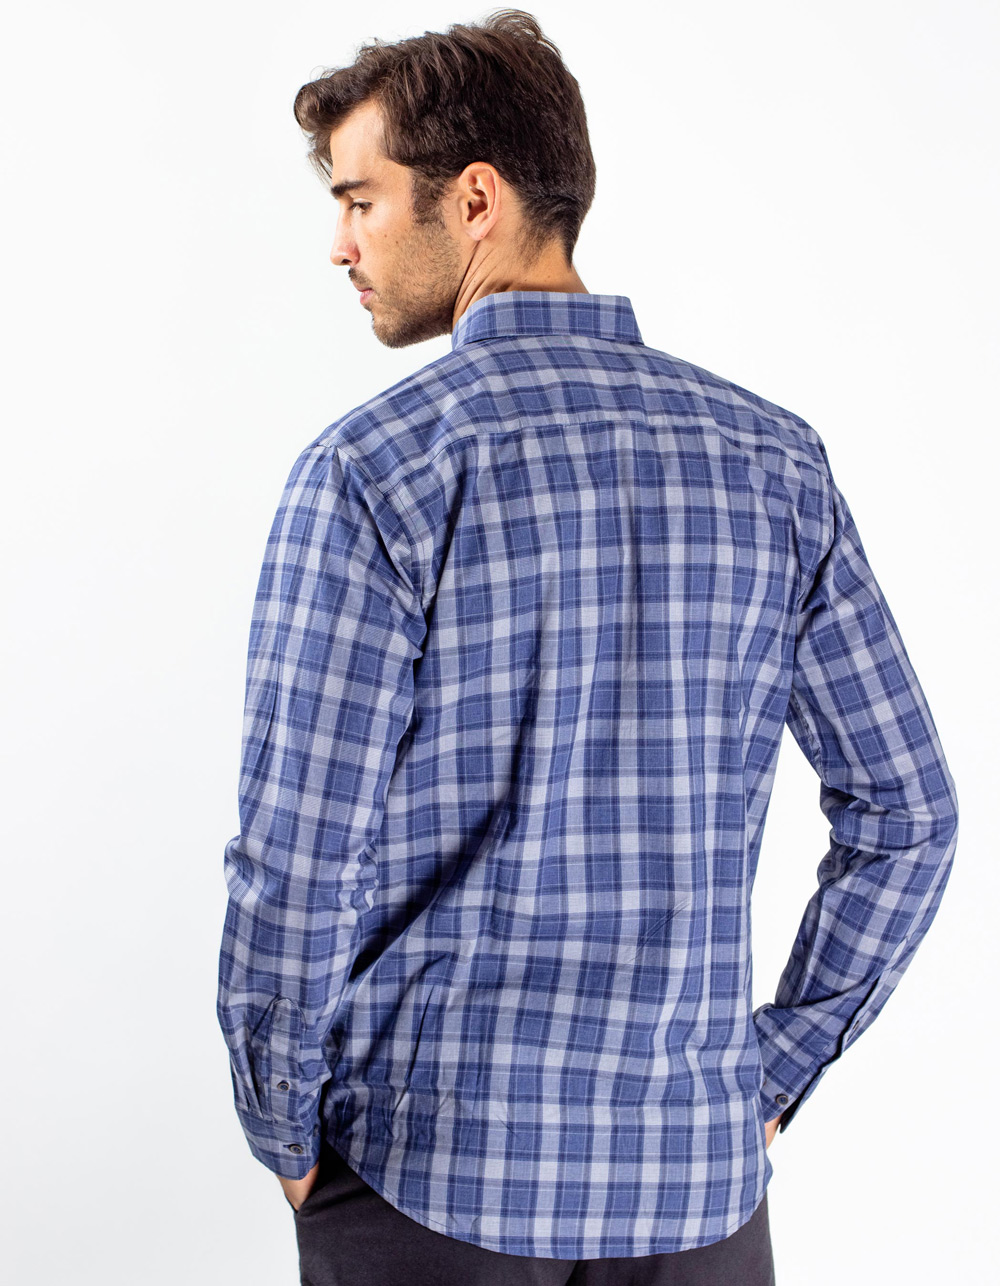 Blue plaid shirt - Backside